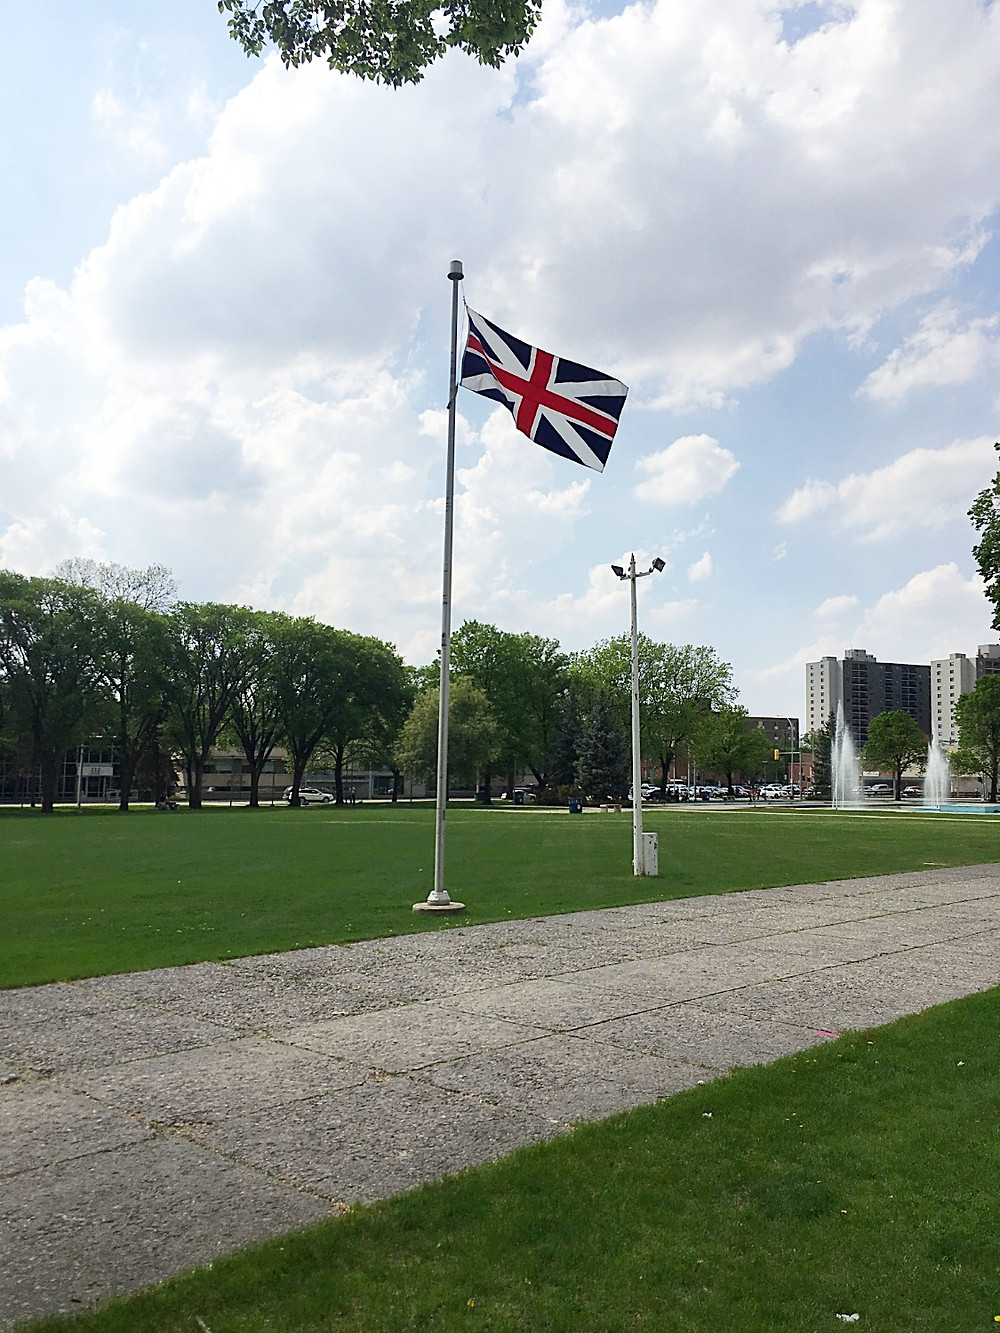 The Loyalist flag flying in Memorial Park